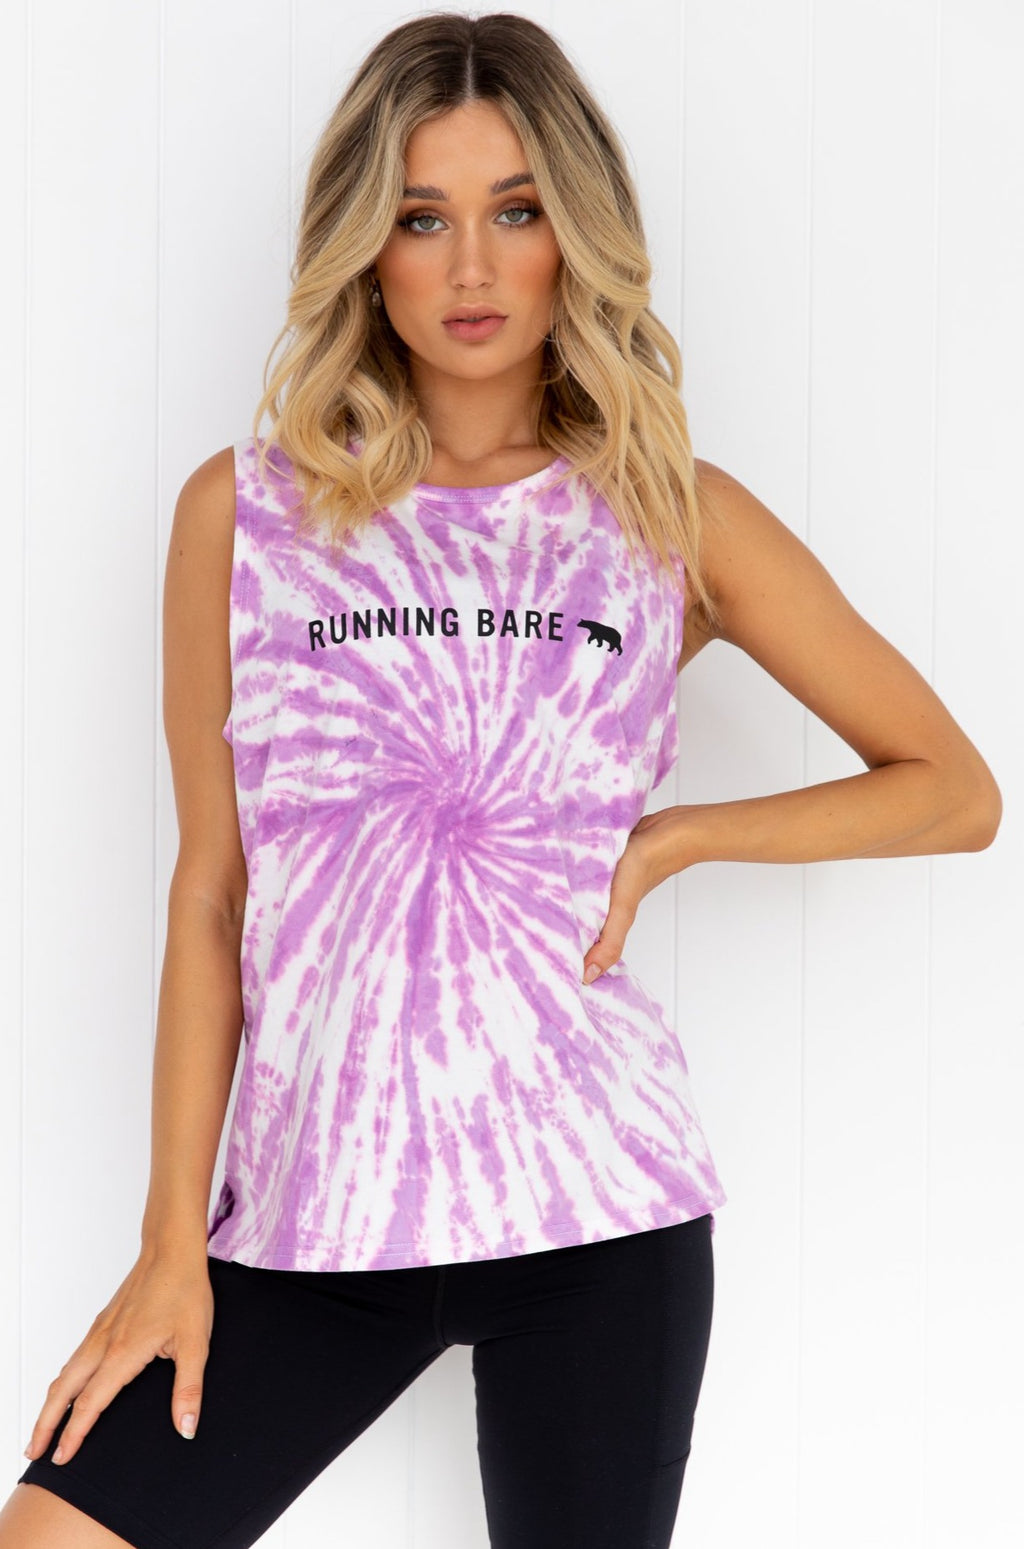 Running Bare Easy Rider Muscle Tank - Mauve Tie Dye